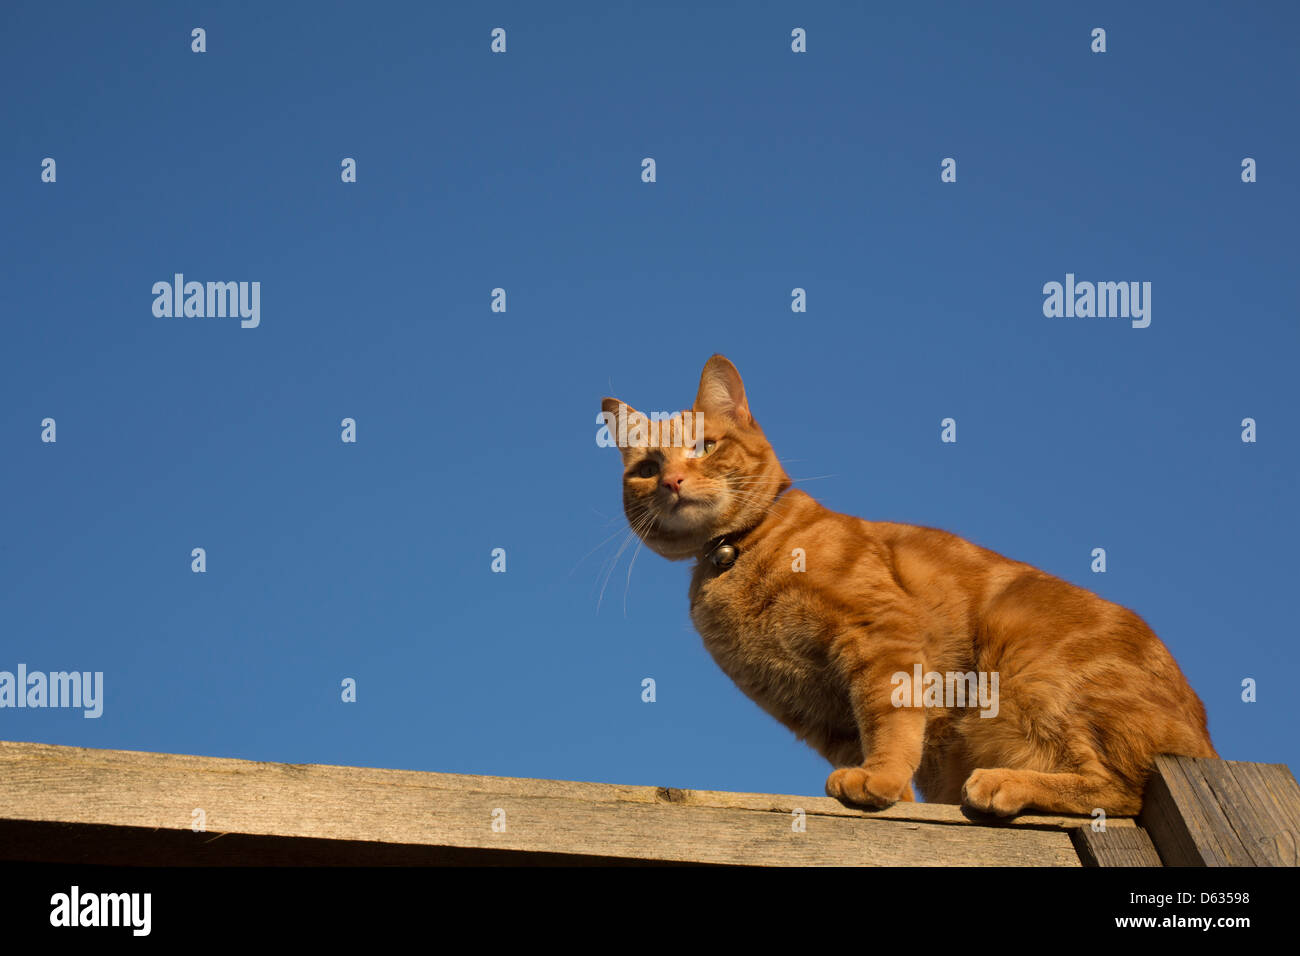 ginger cat balanced on the top of a fence - Stock Image